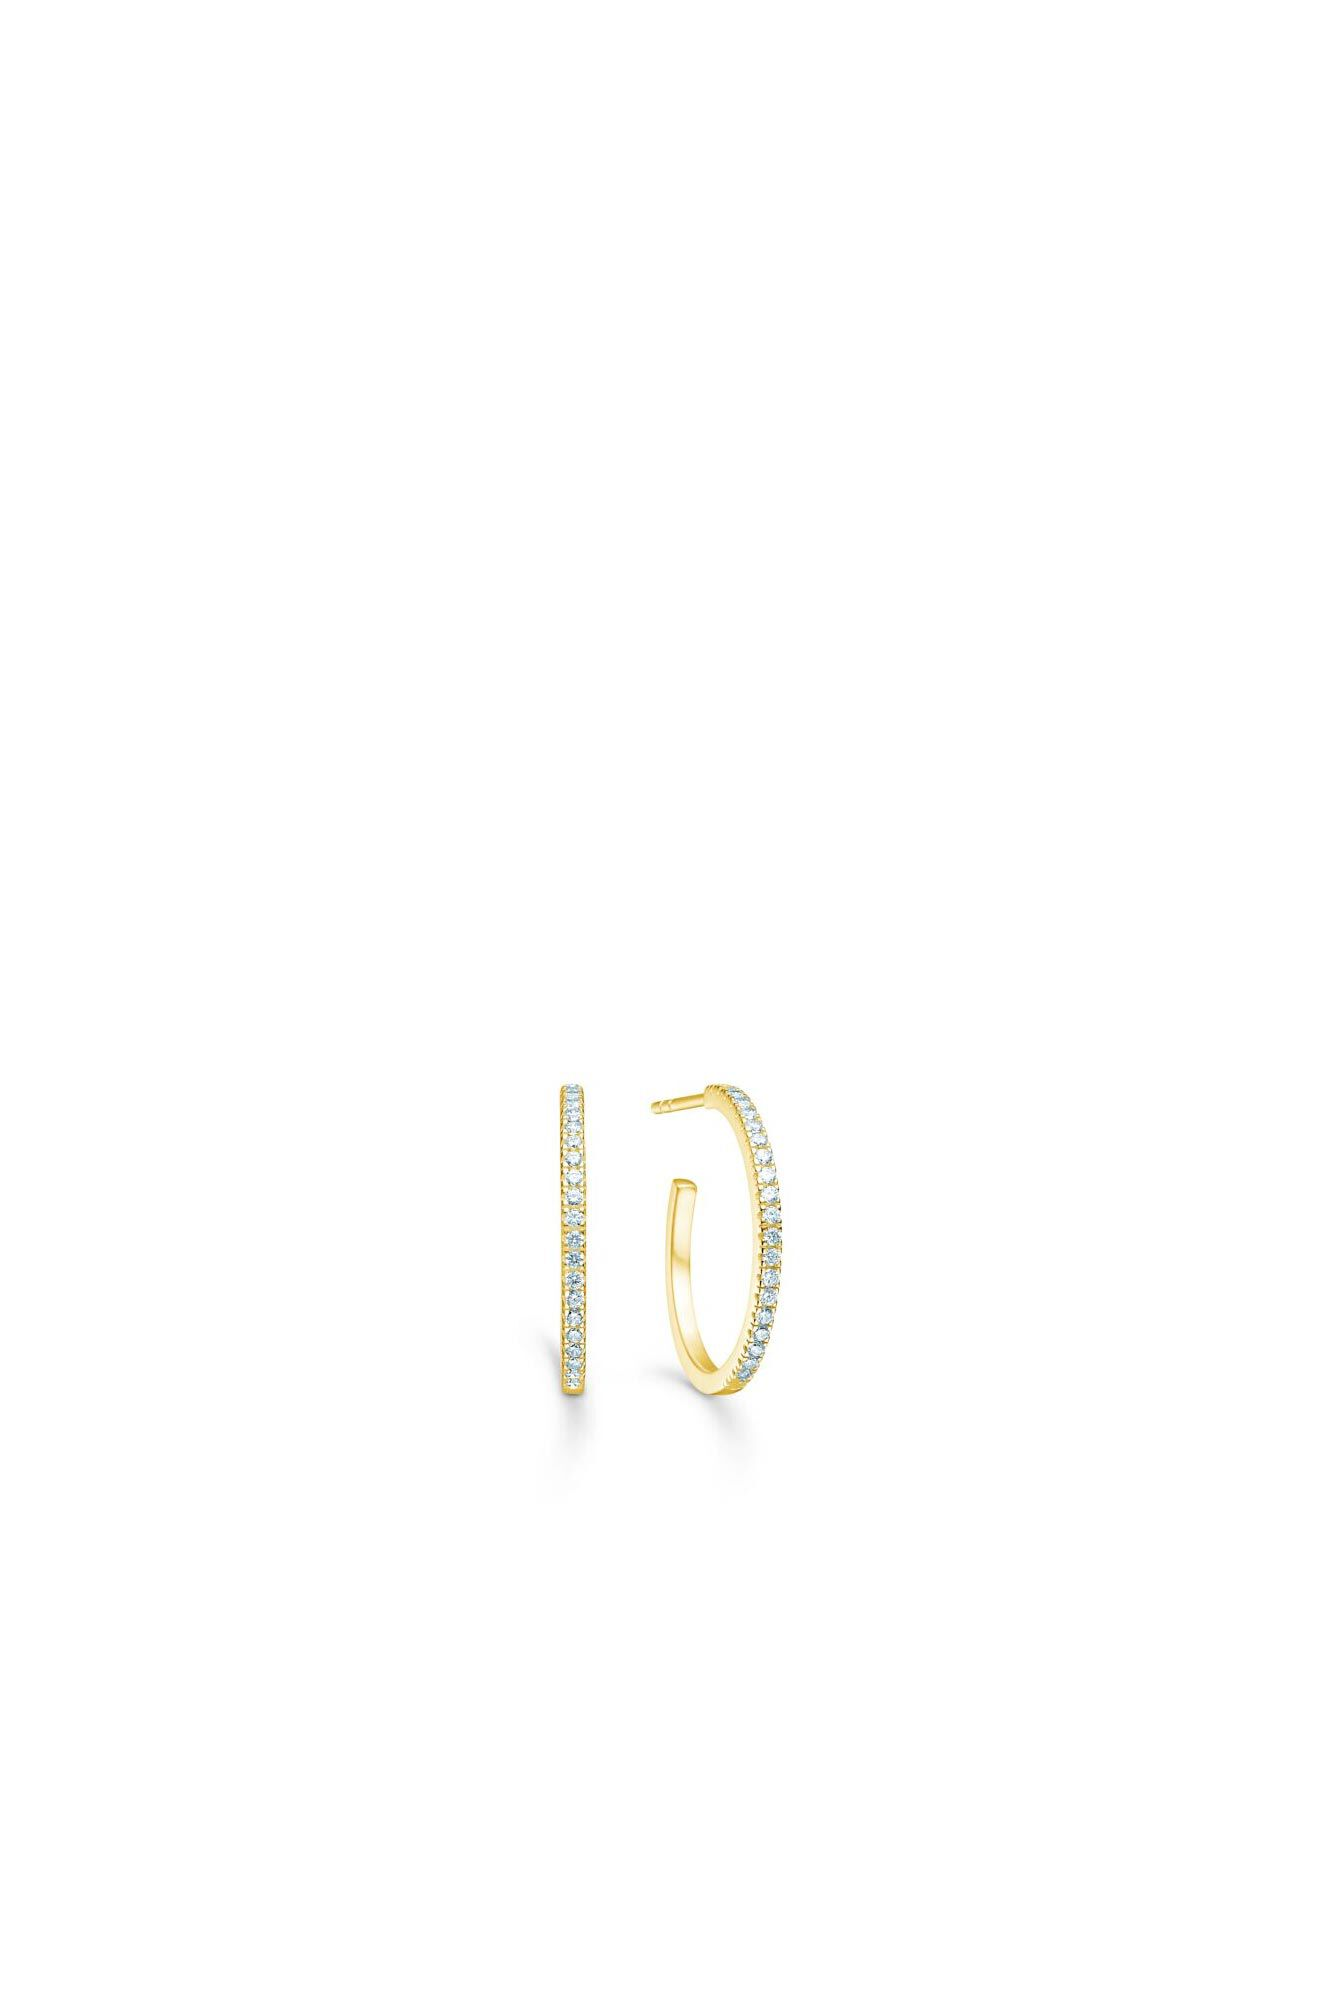 Simplicty mini hoops IDE009GH